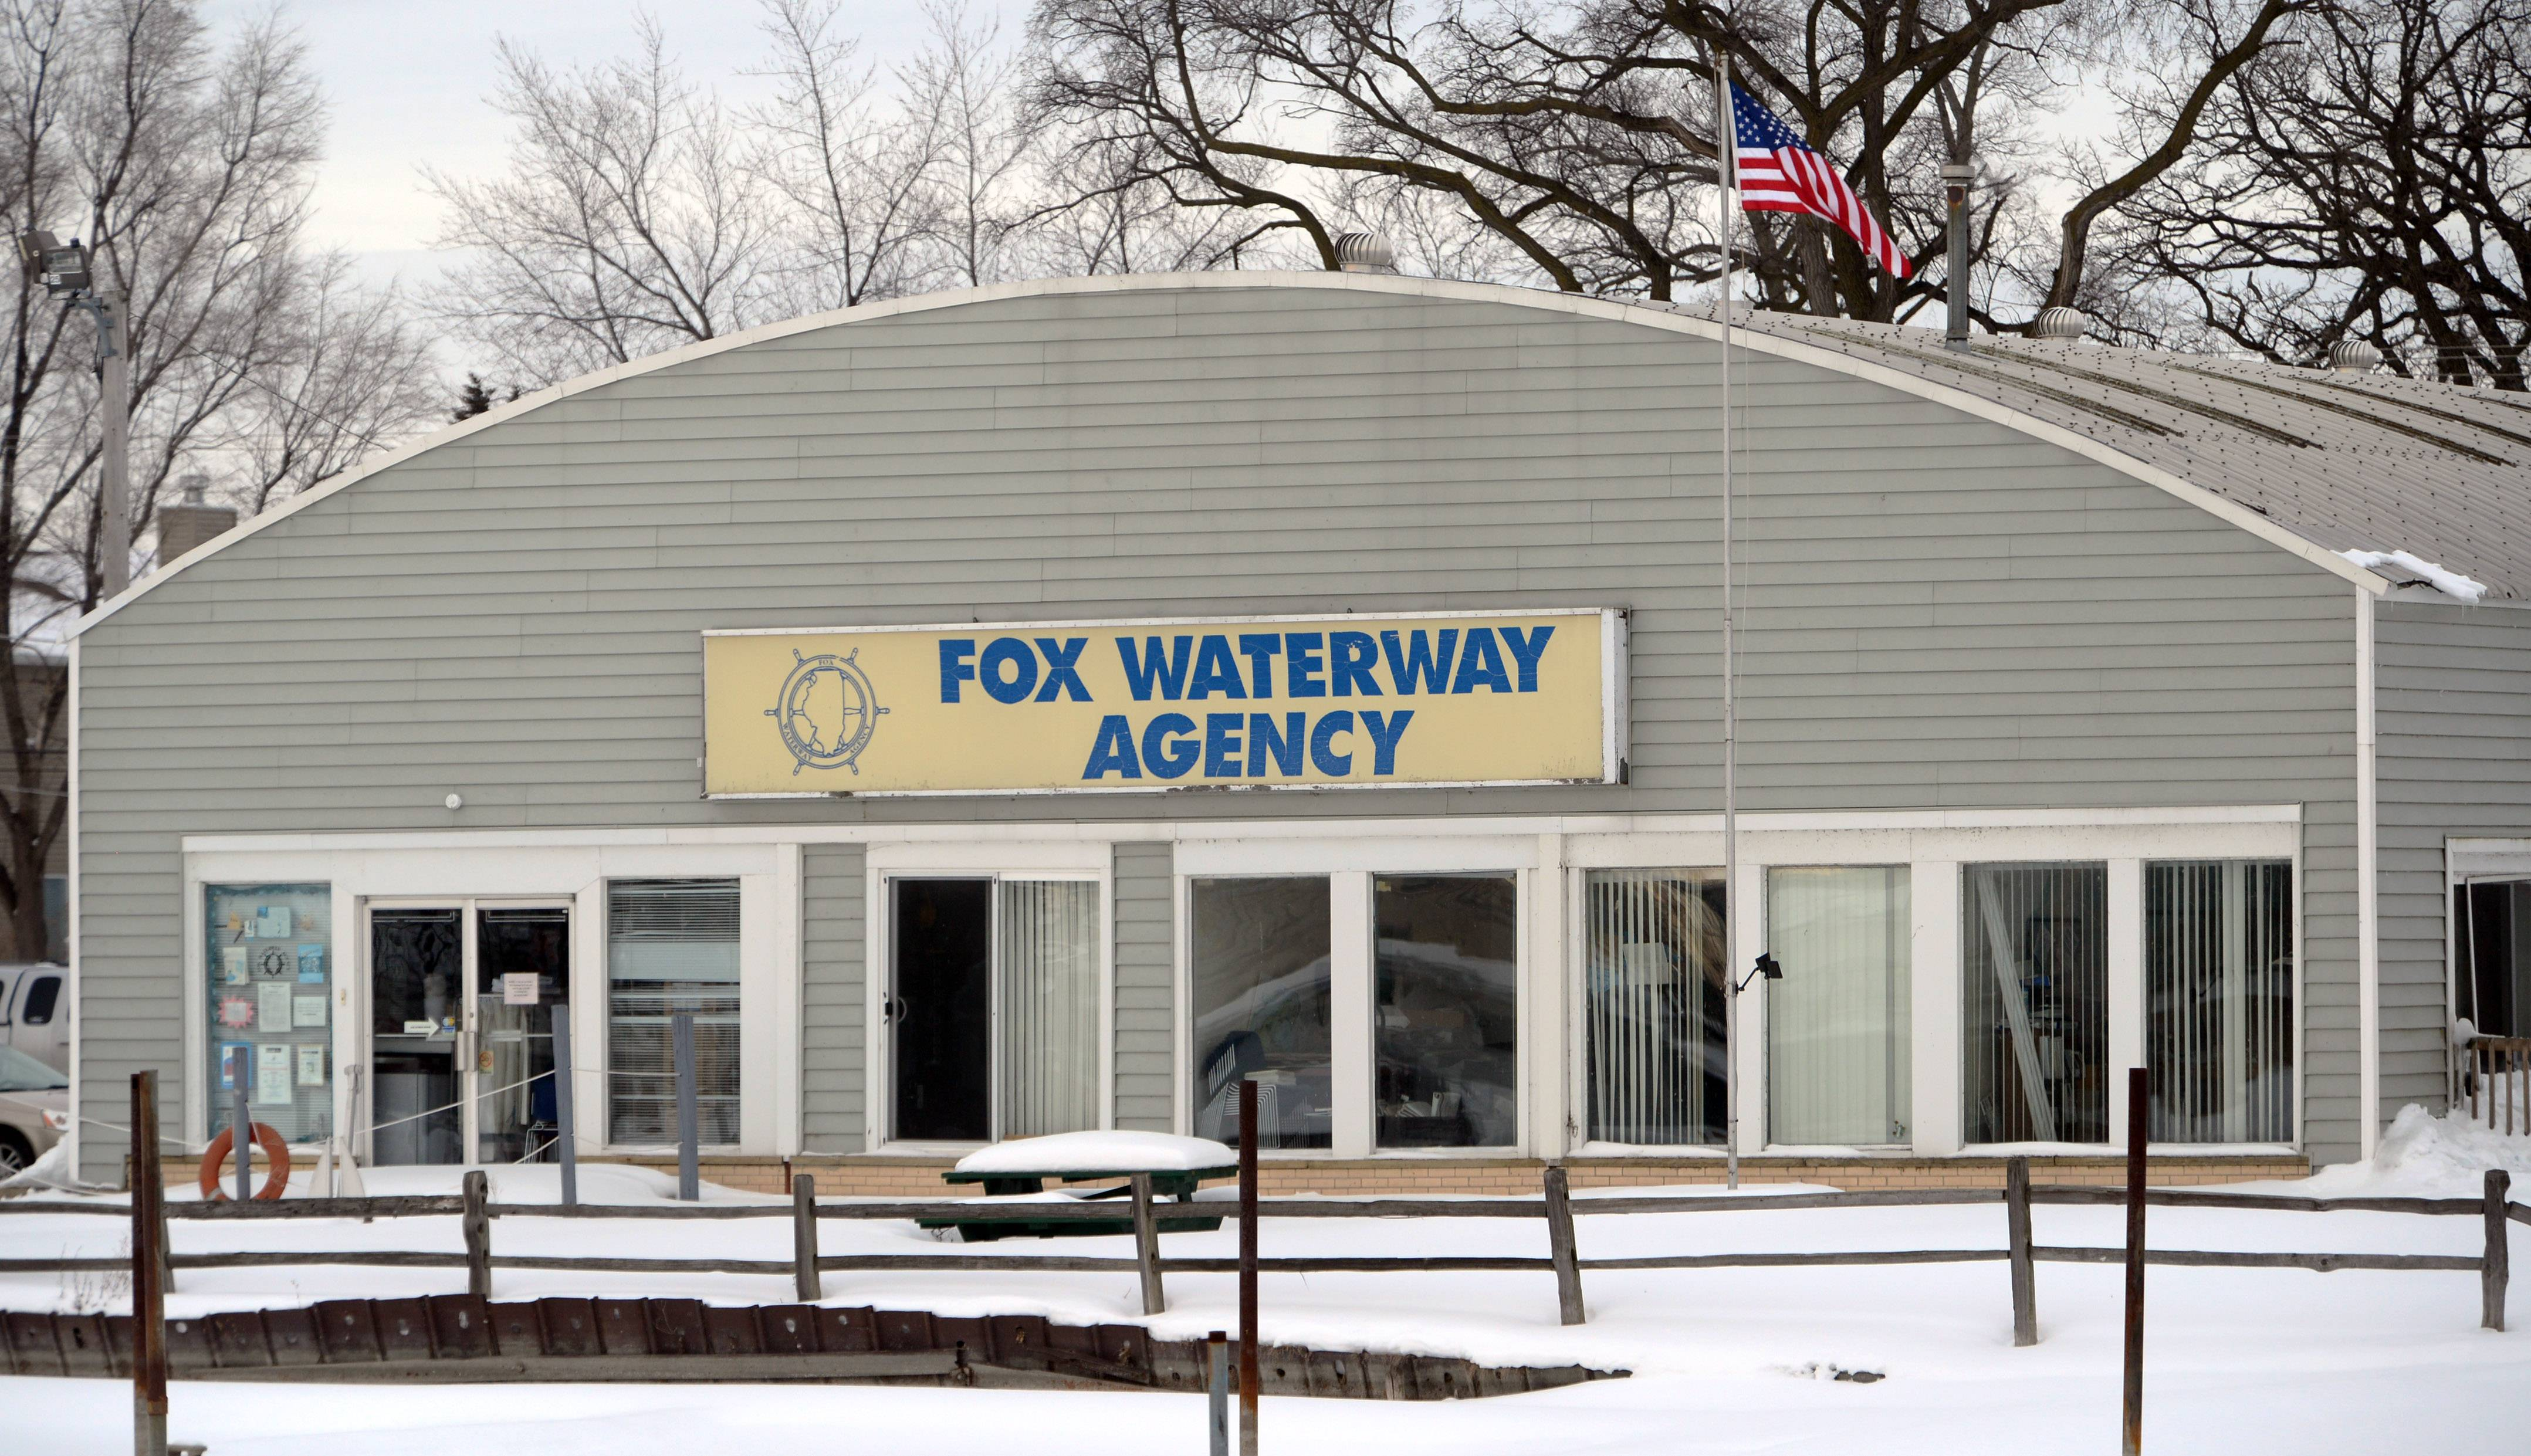 The Fox Waterway Agency in Fox Lake would be abolished if a pair of state lawmakers from Lake County get their way. They say the agency is redundant.